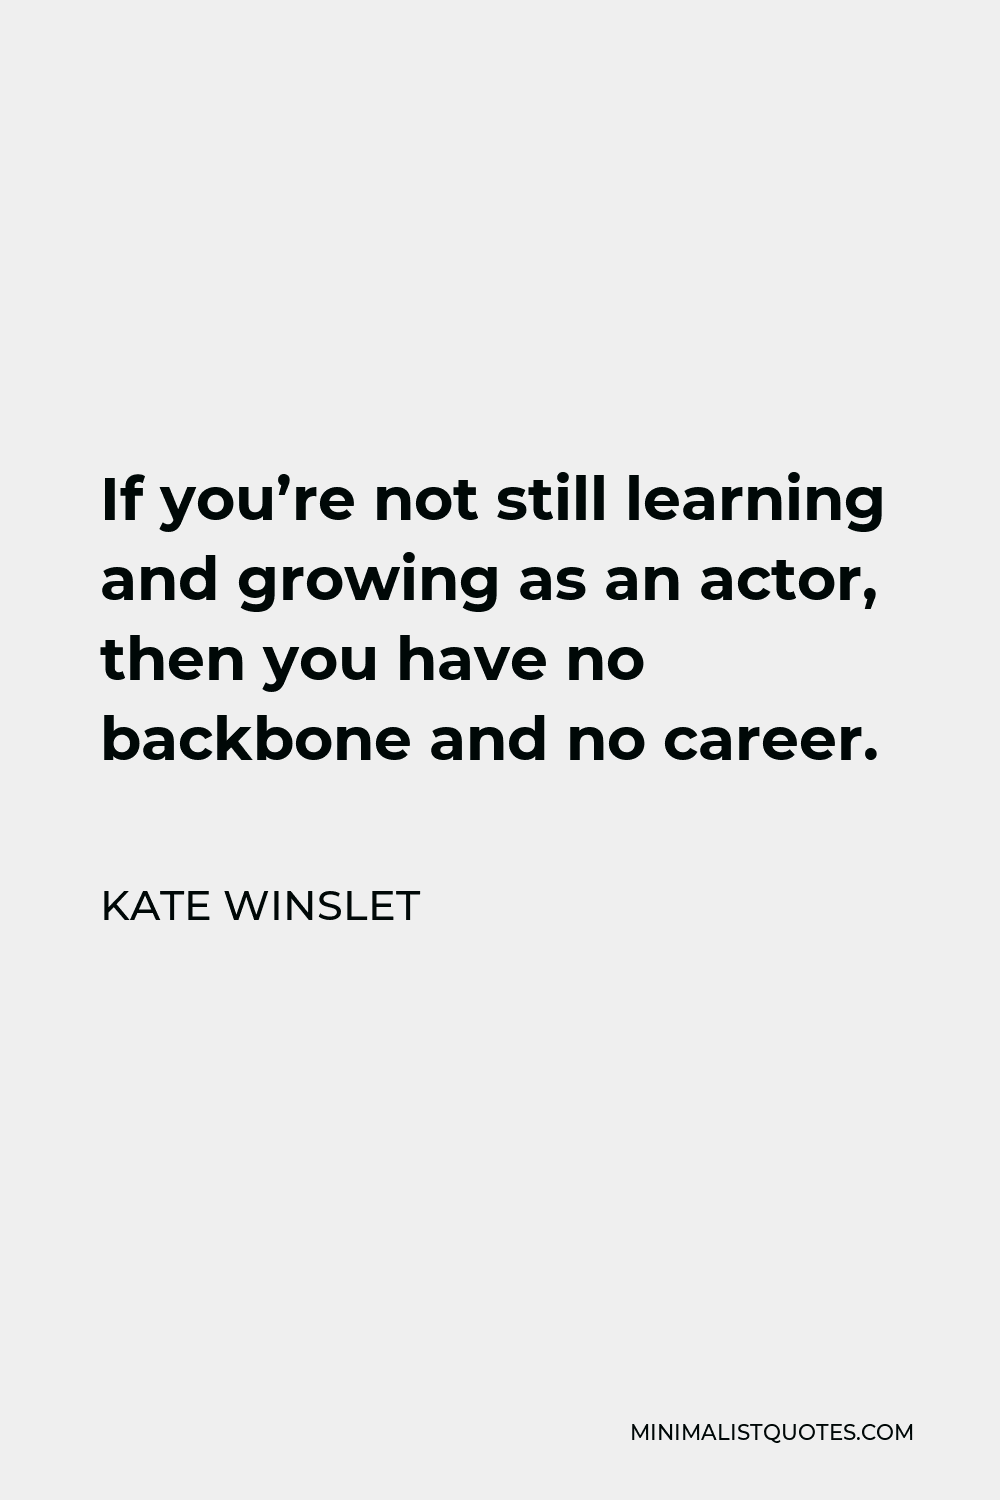 Kate Winslet Quote - If you're not still learning and growing as an actor, then you have no backbone and no career.